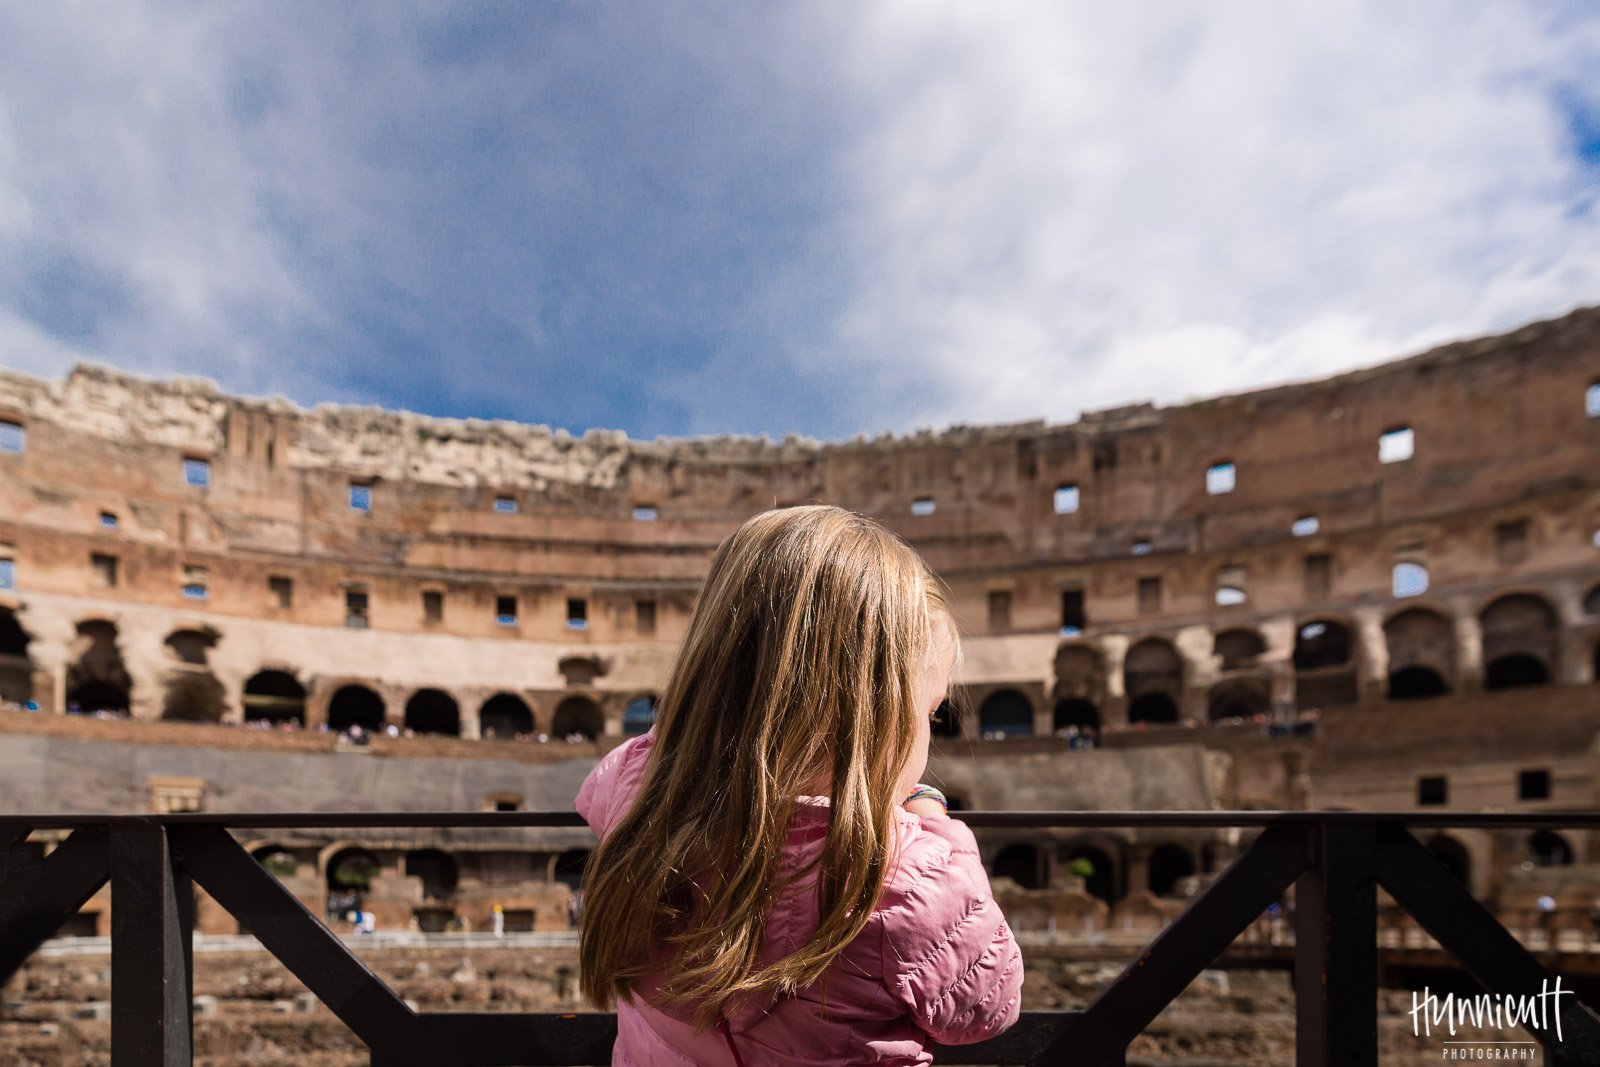 You too can travel with your dSLR and family while capturing creative photographic memories, while having fun, and not overwhelming your family as your primary subject.